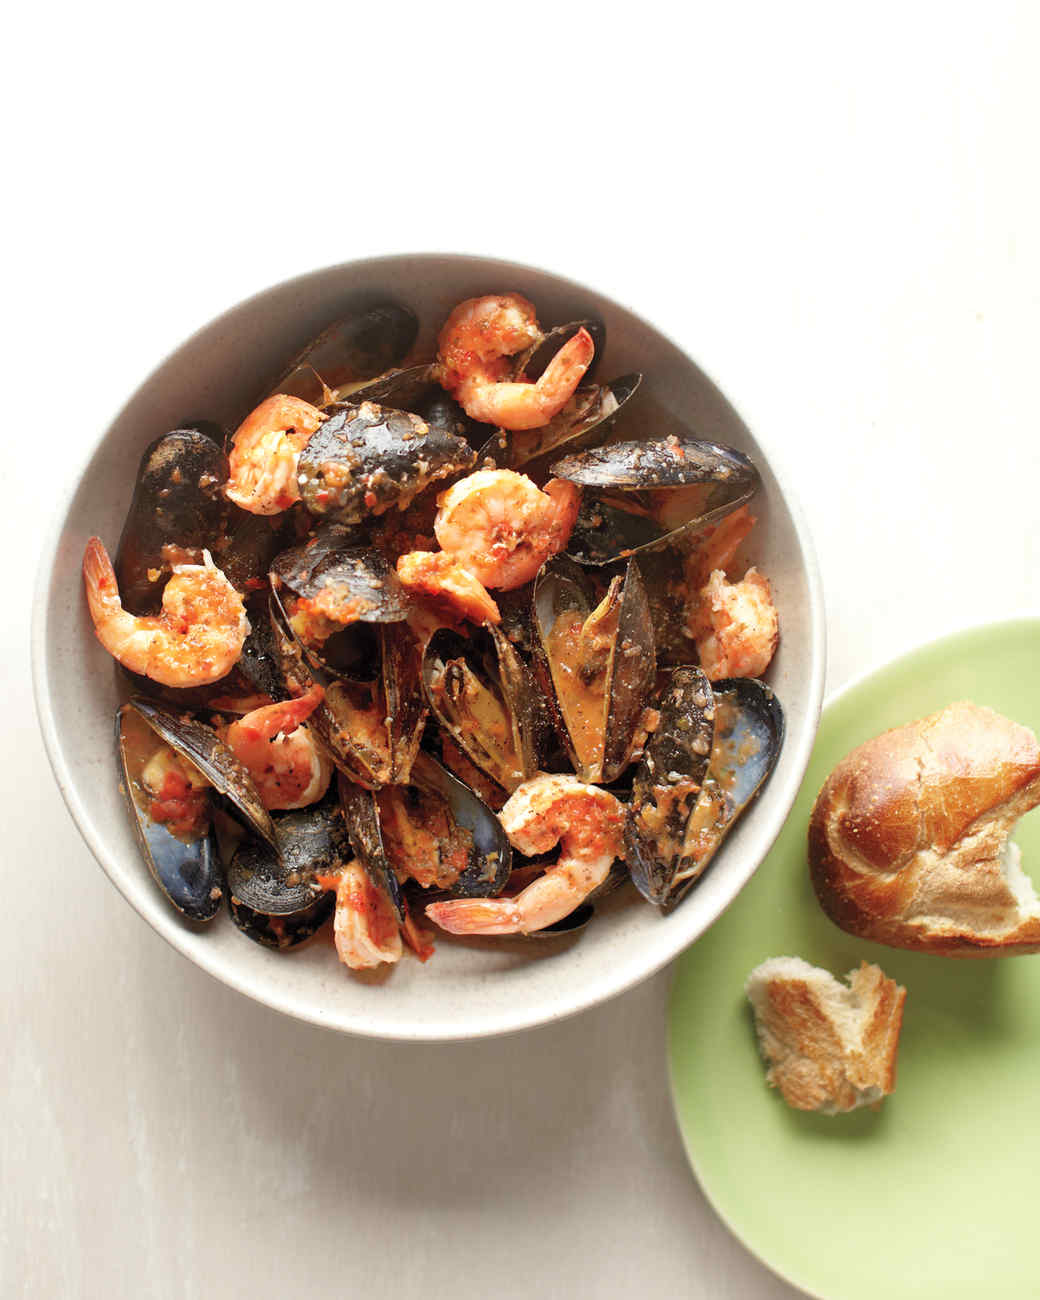 Shrimp and Mussels with Sofrito